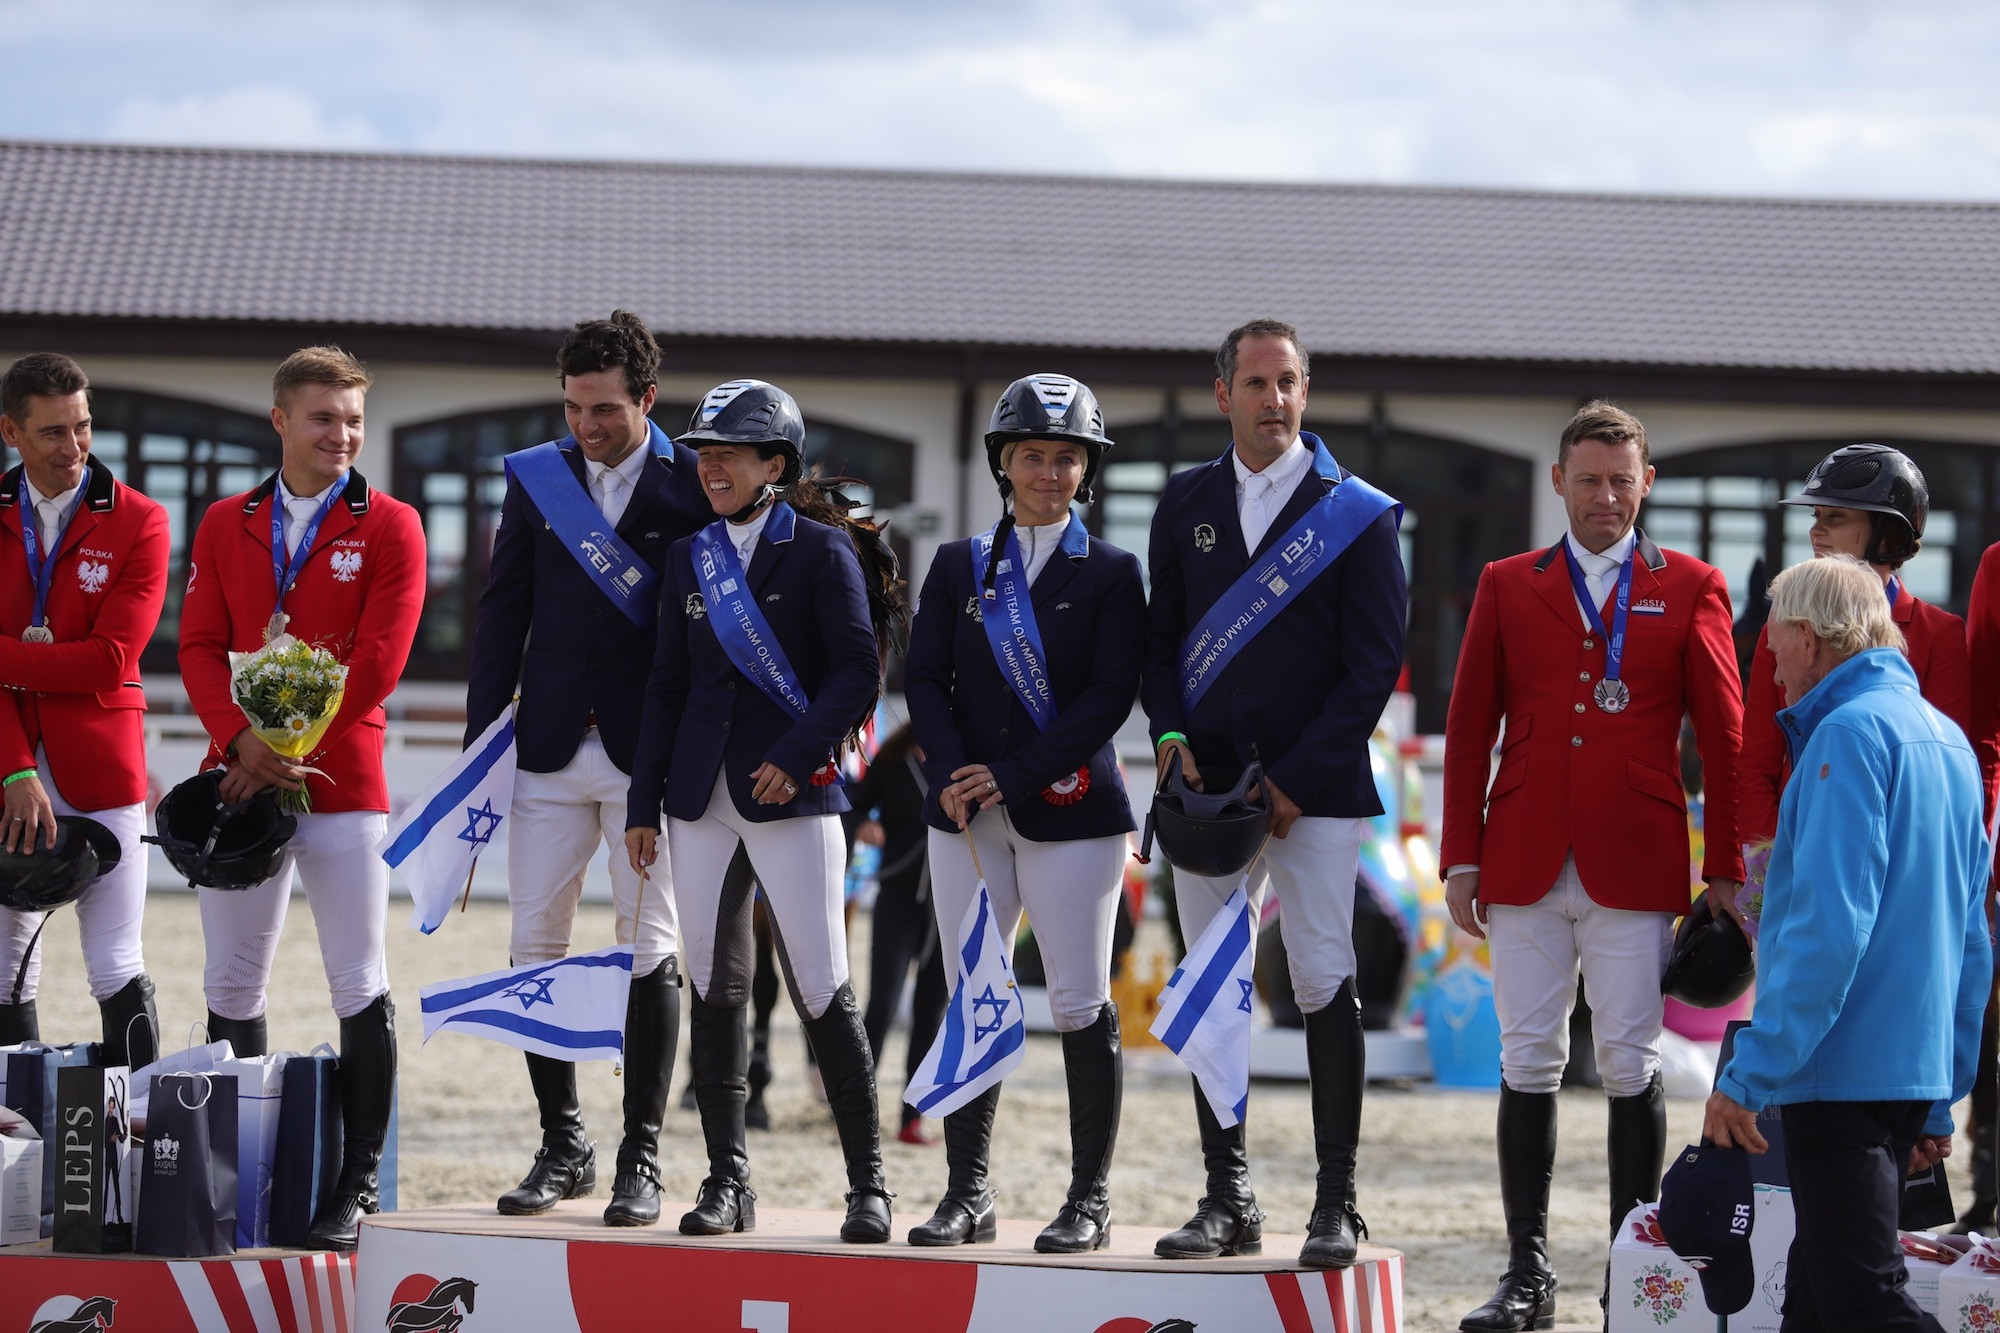 Israel earn historic Olympic berth at Tokyo 2020 with qualifying victory in Moscow